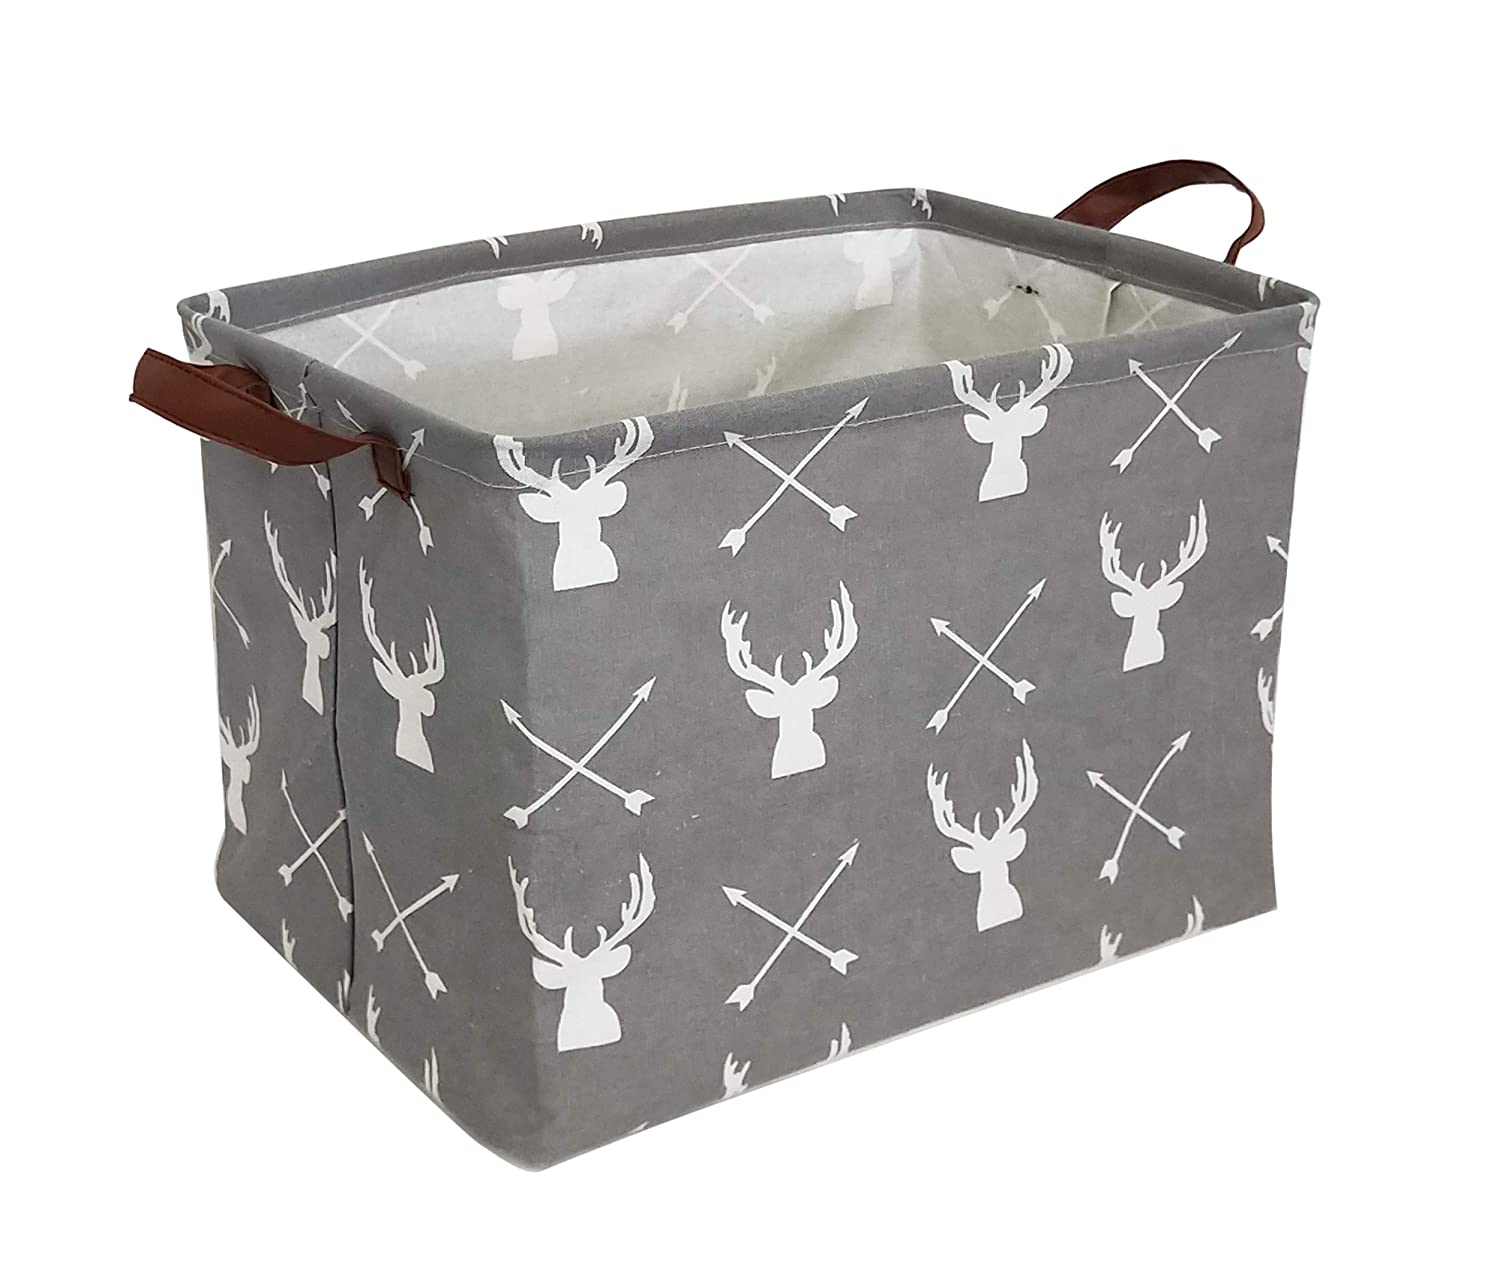 HIYAGON Rectangular Storage Box,Fabric Storage Bin for Organizing Toys,Collapsible Storage Basket for Baby, Kids or Pets,Clothing,Books.Nursery Basket (Grey Deers)